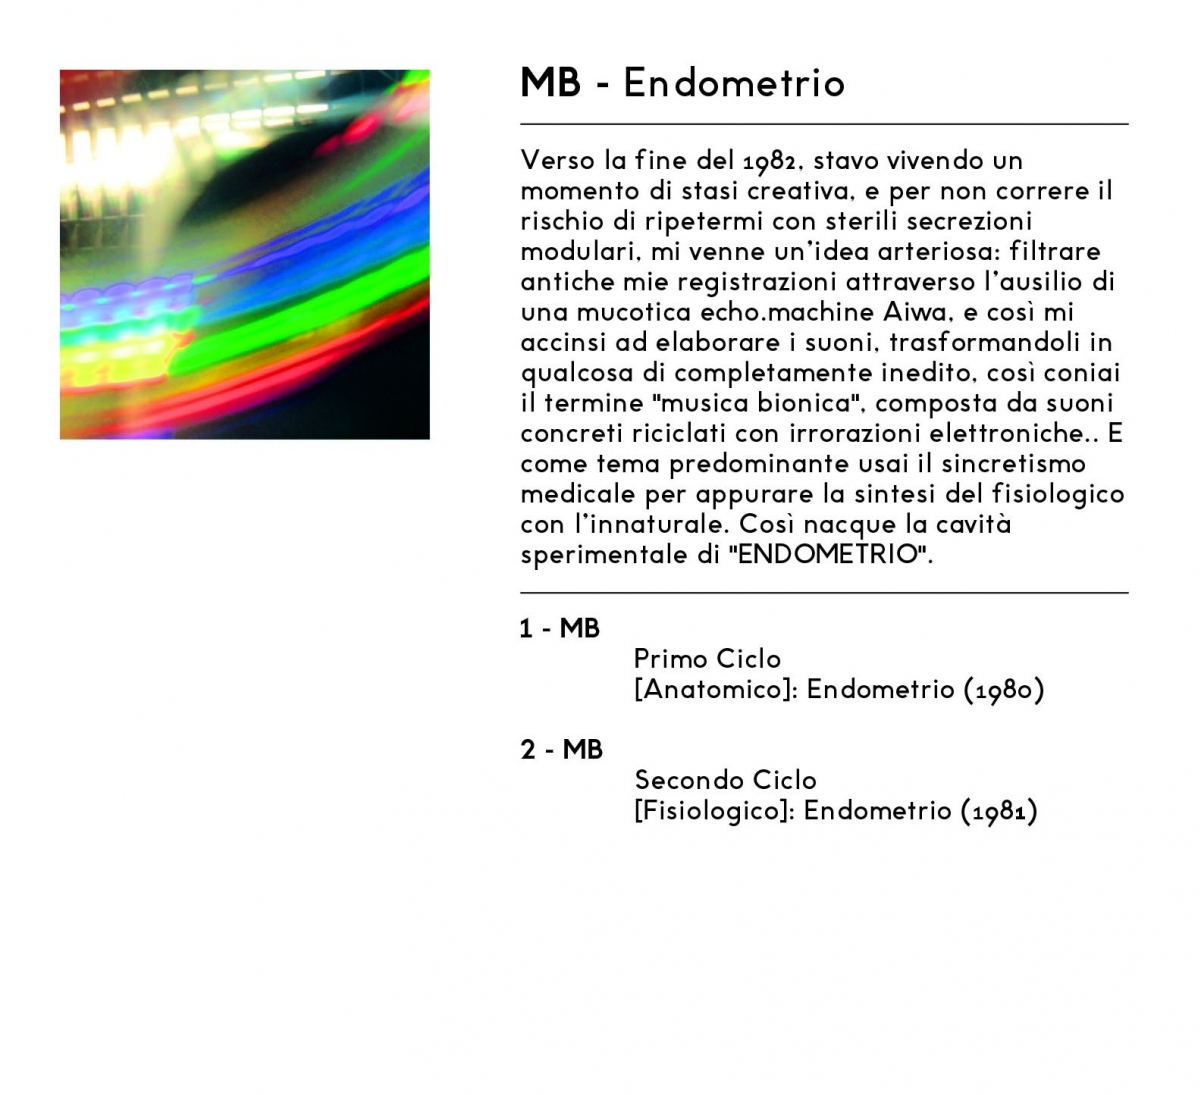 ENDOMETRIO DE-COMPOSTO